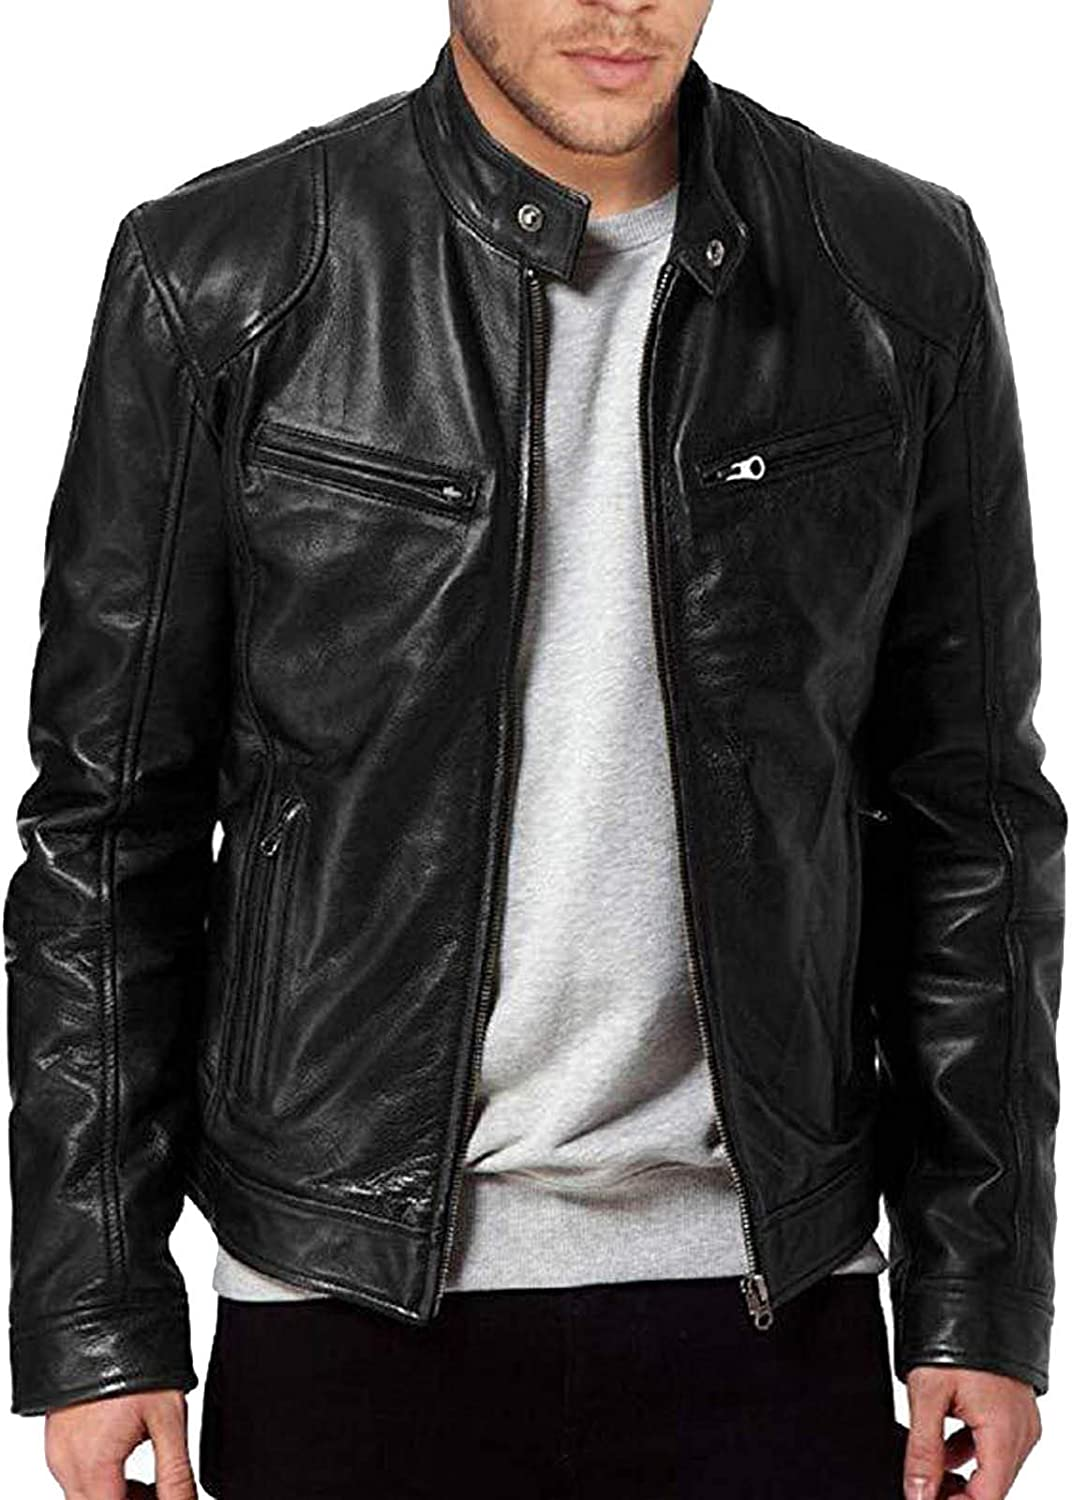 Men's Bomber Jacket Faux Leather Motorcycle Fashion Sportswear Casual Military Tactical Outerwear Jacket for Men